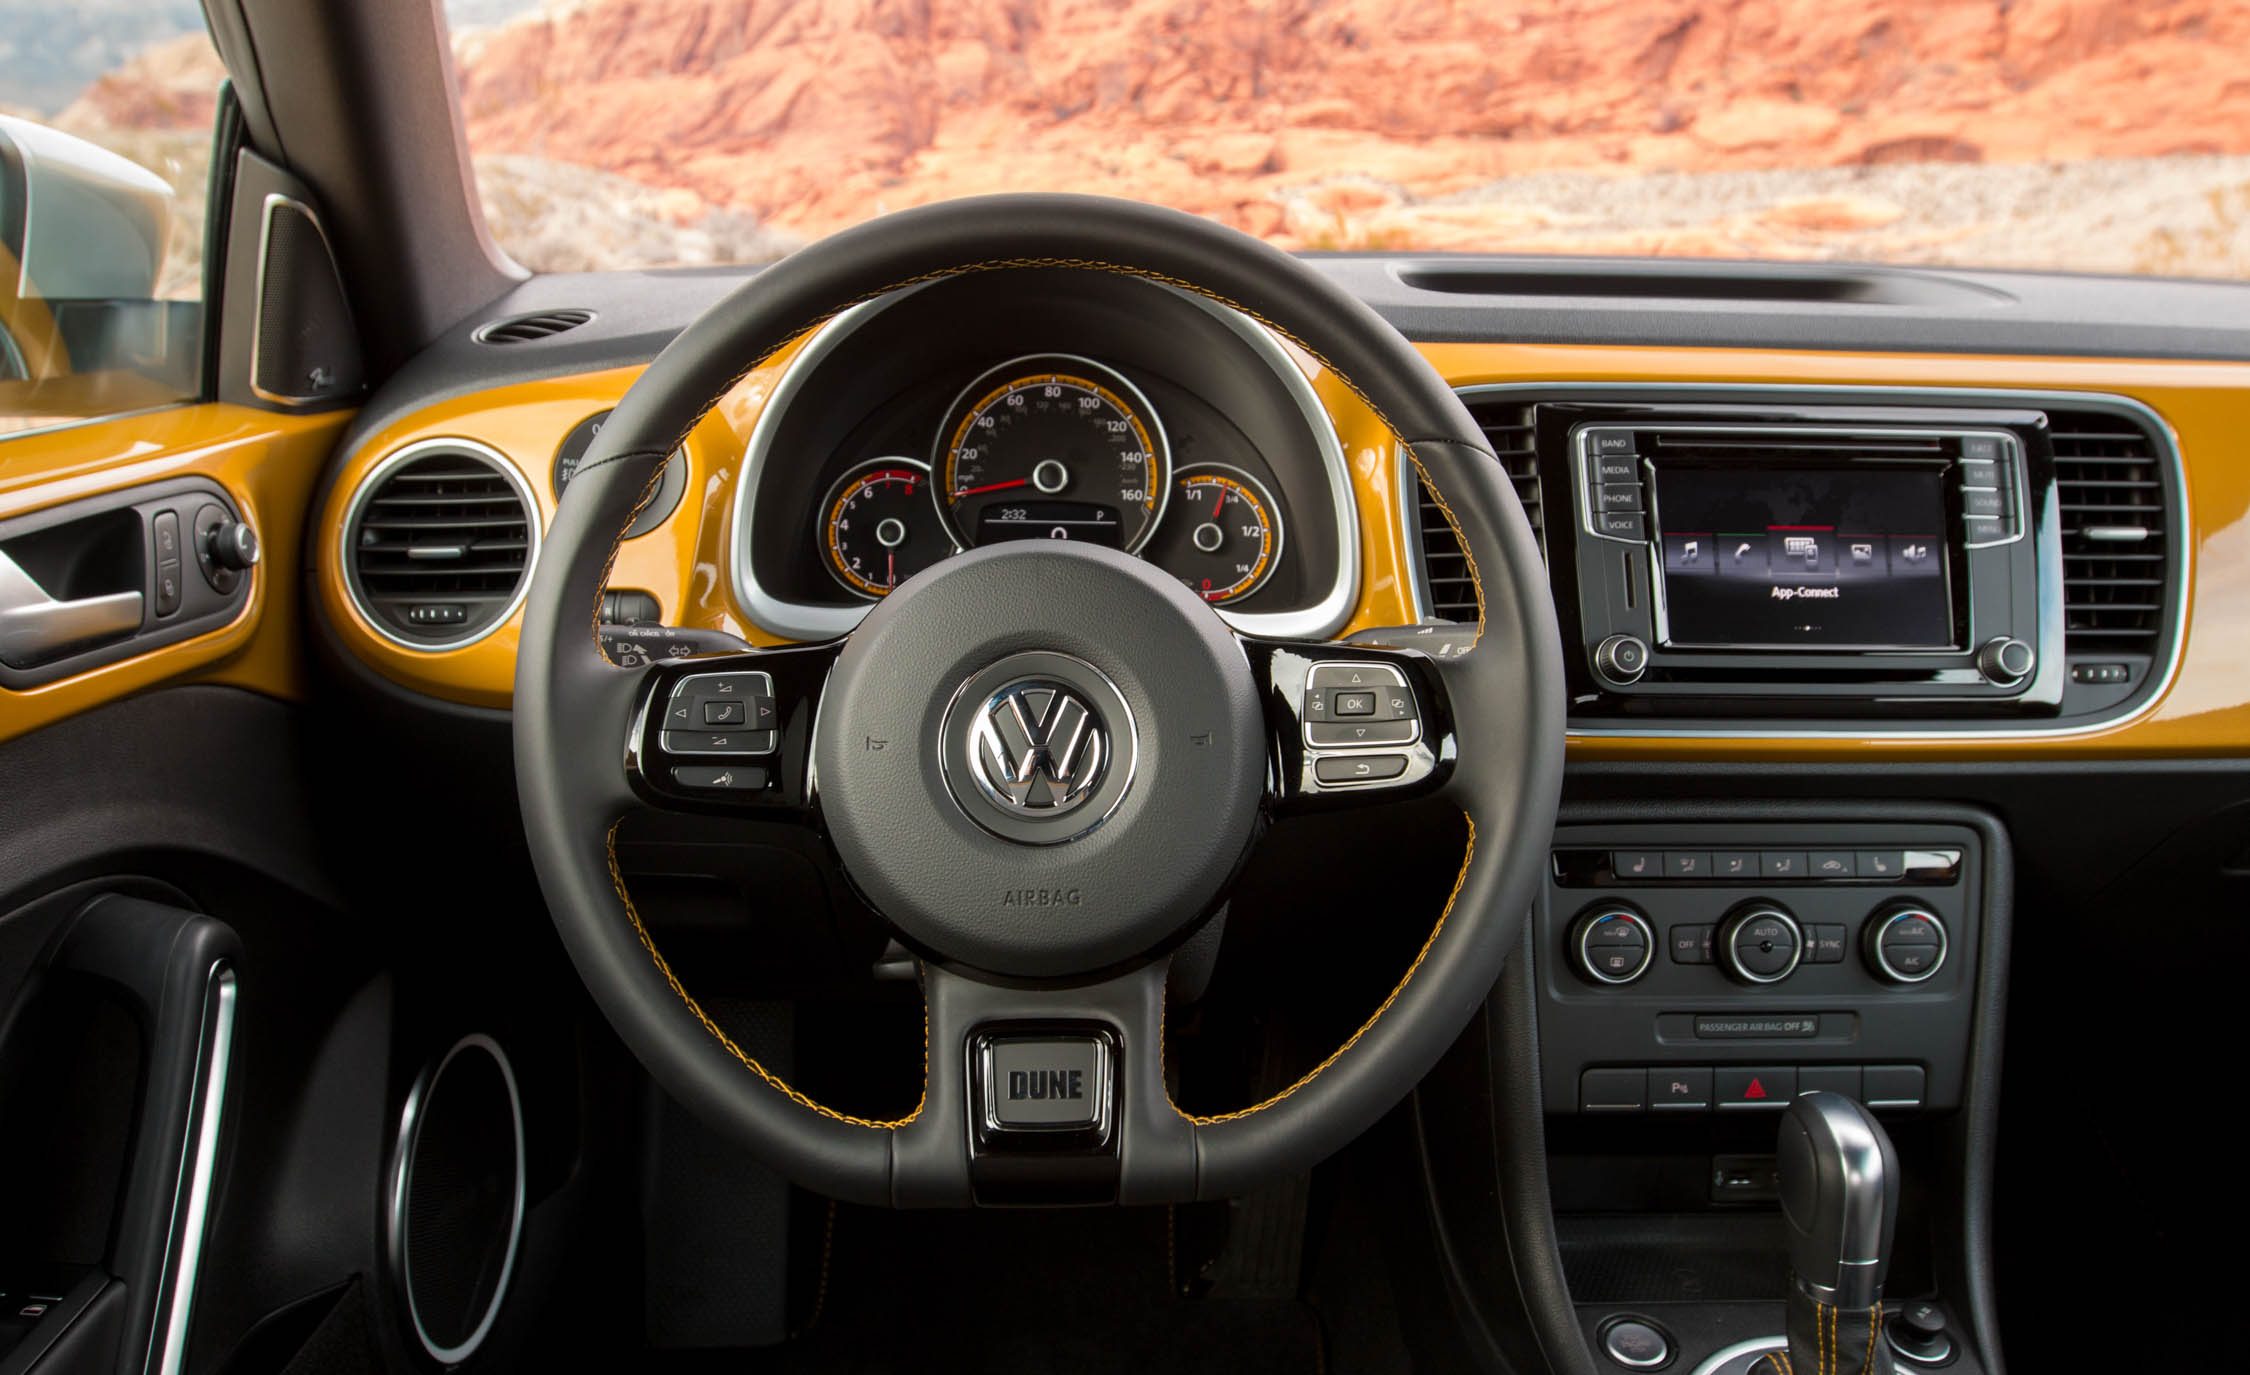 2016 Volkswagen Beetle Dune Interior Steering and Speedometer